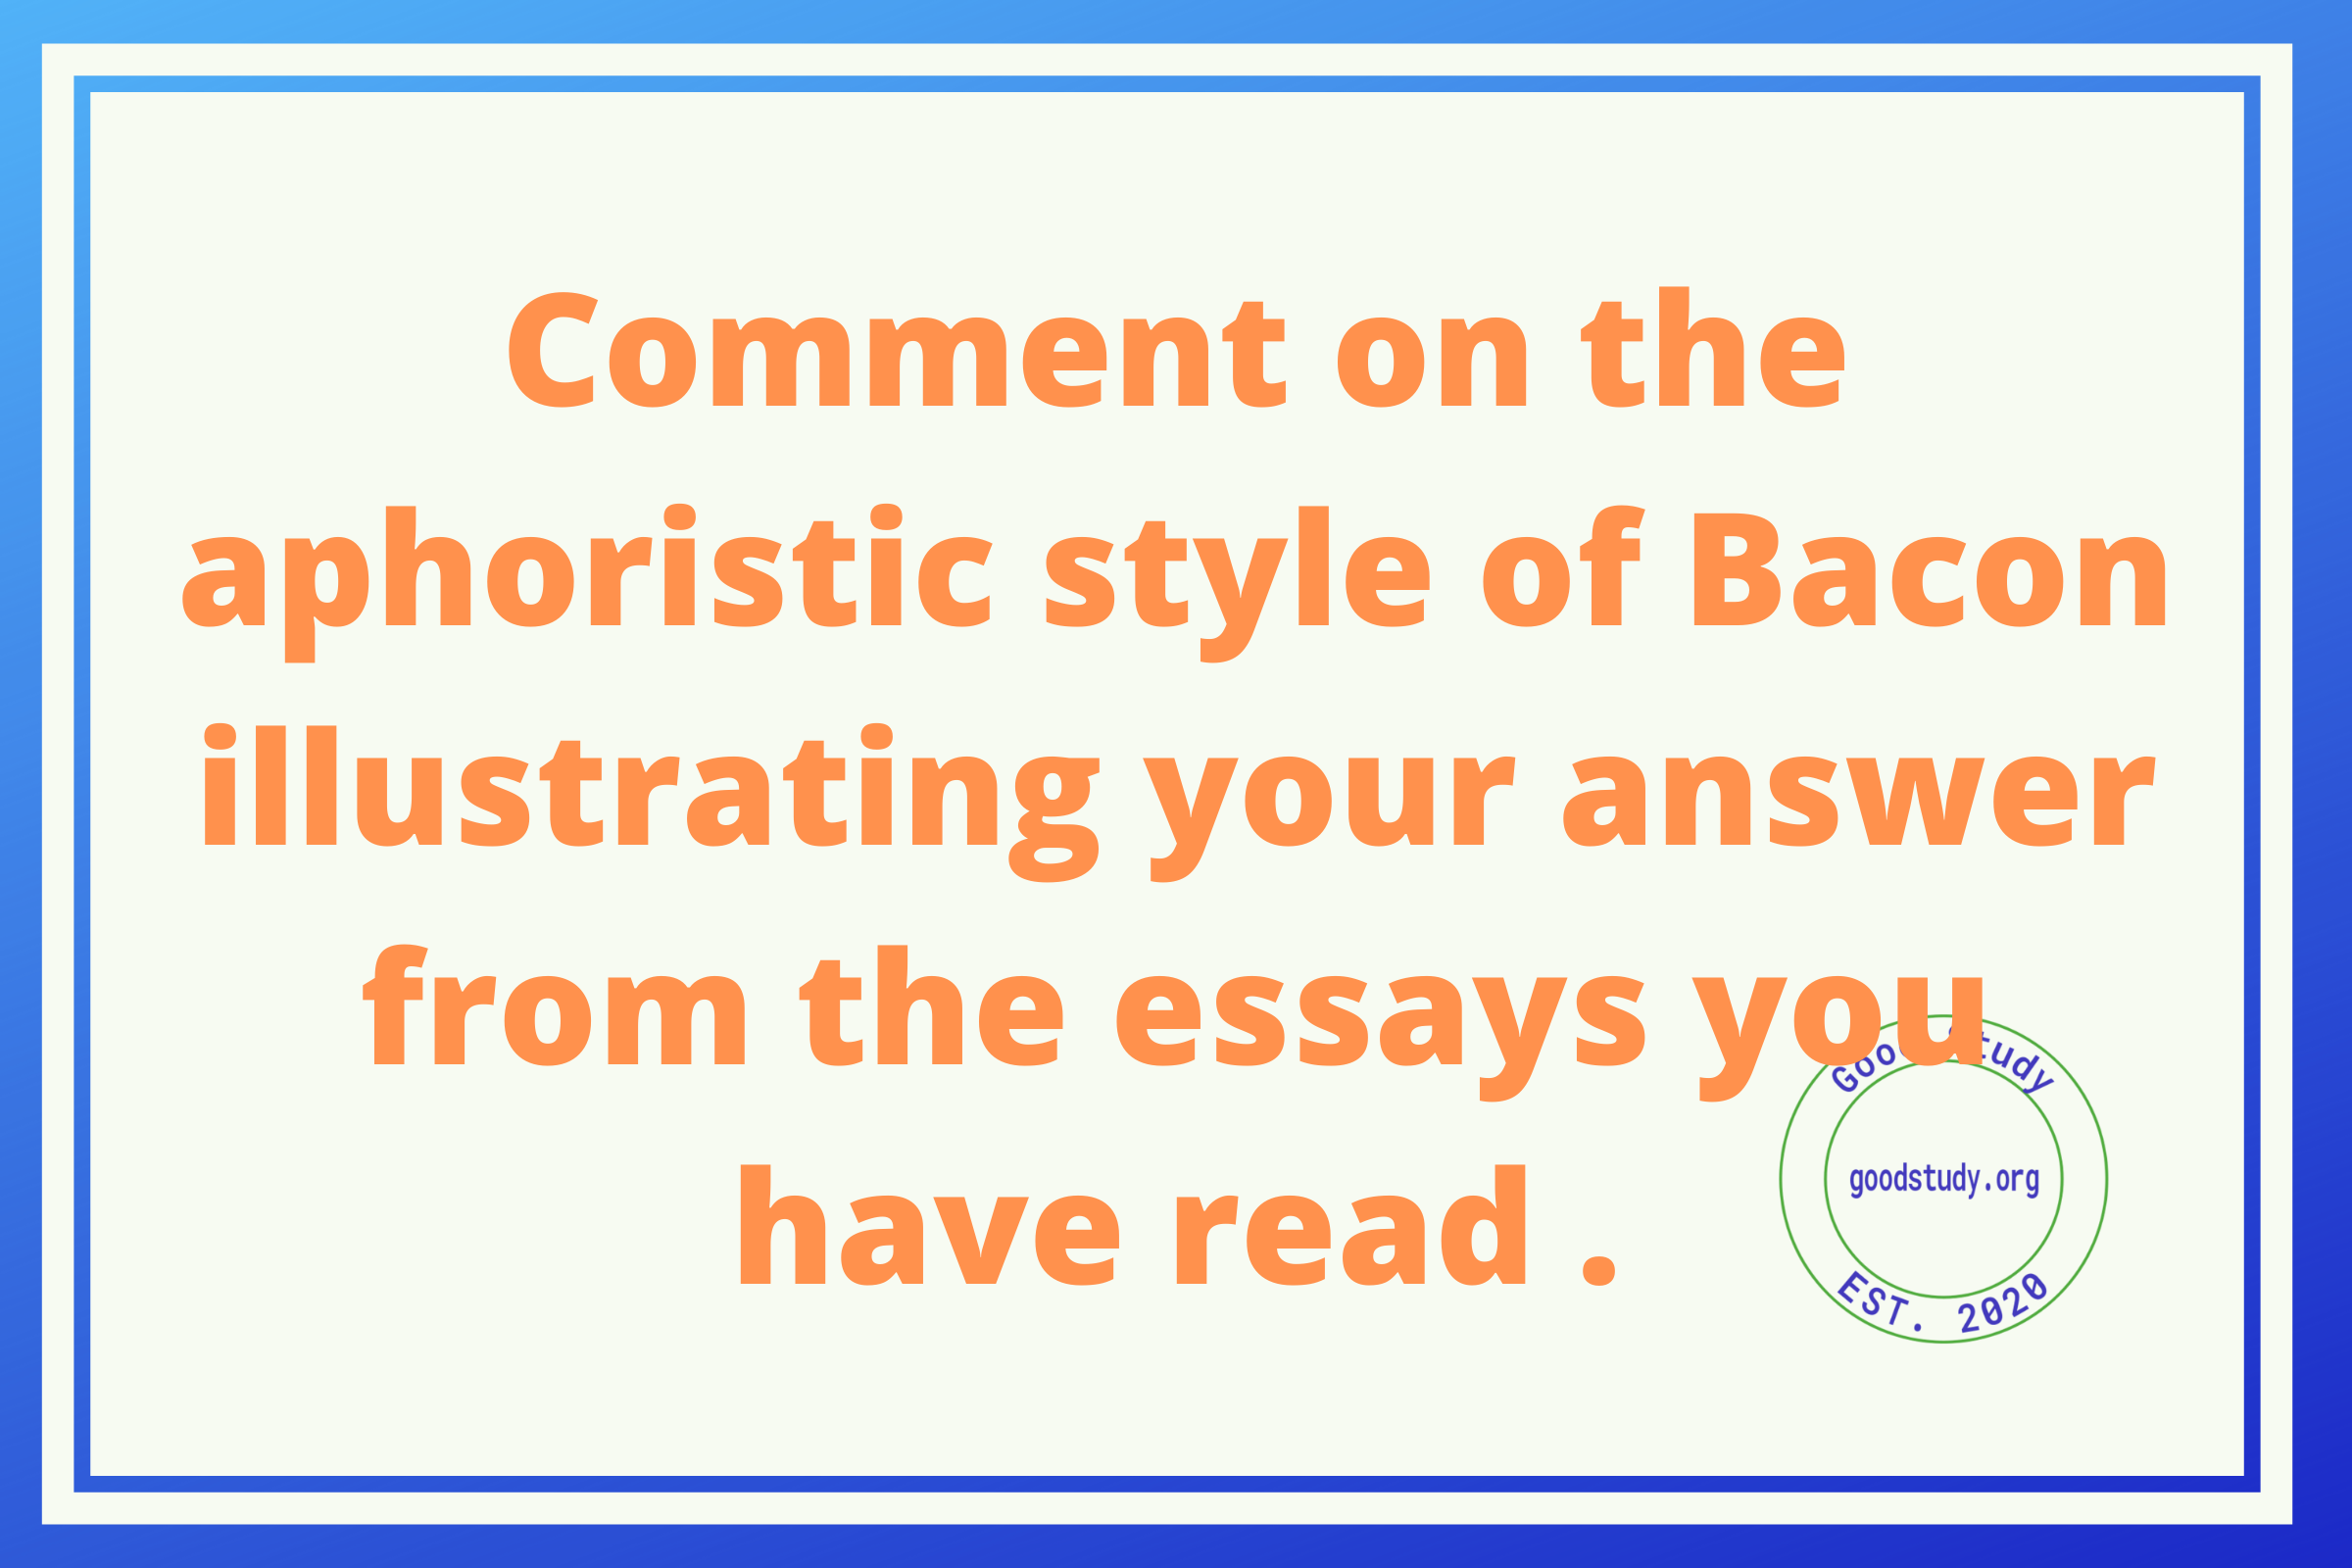 Comment on the aphoristic style of Bacon illustrating